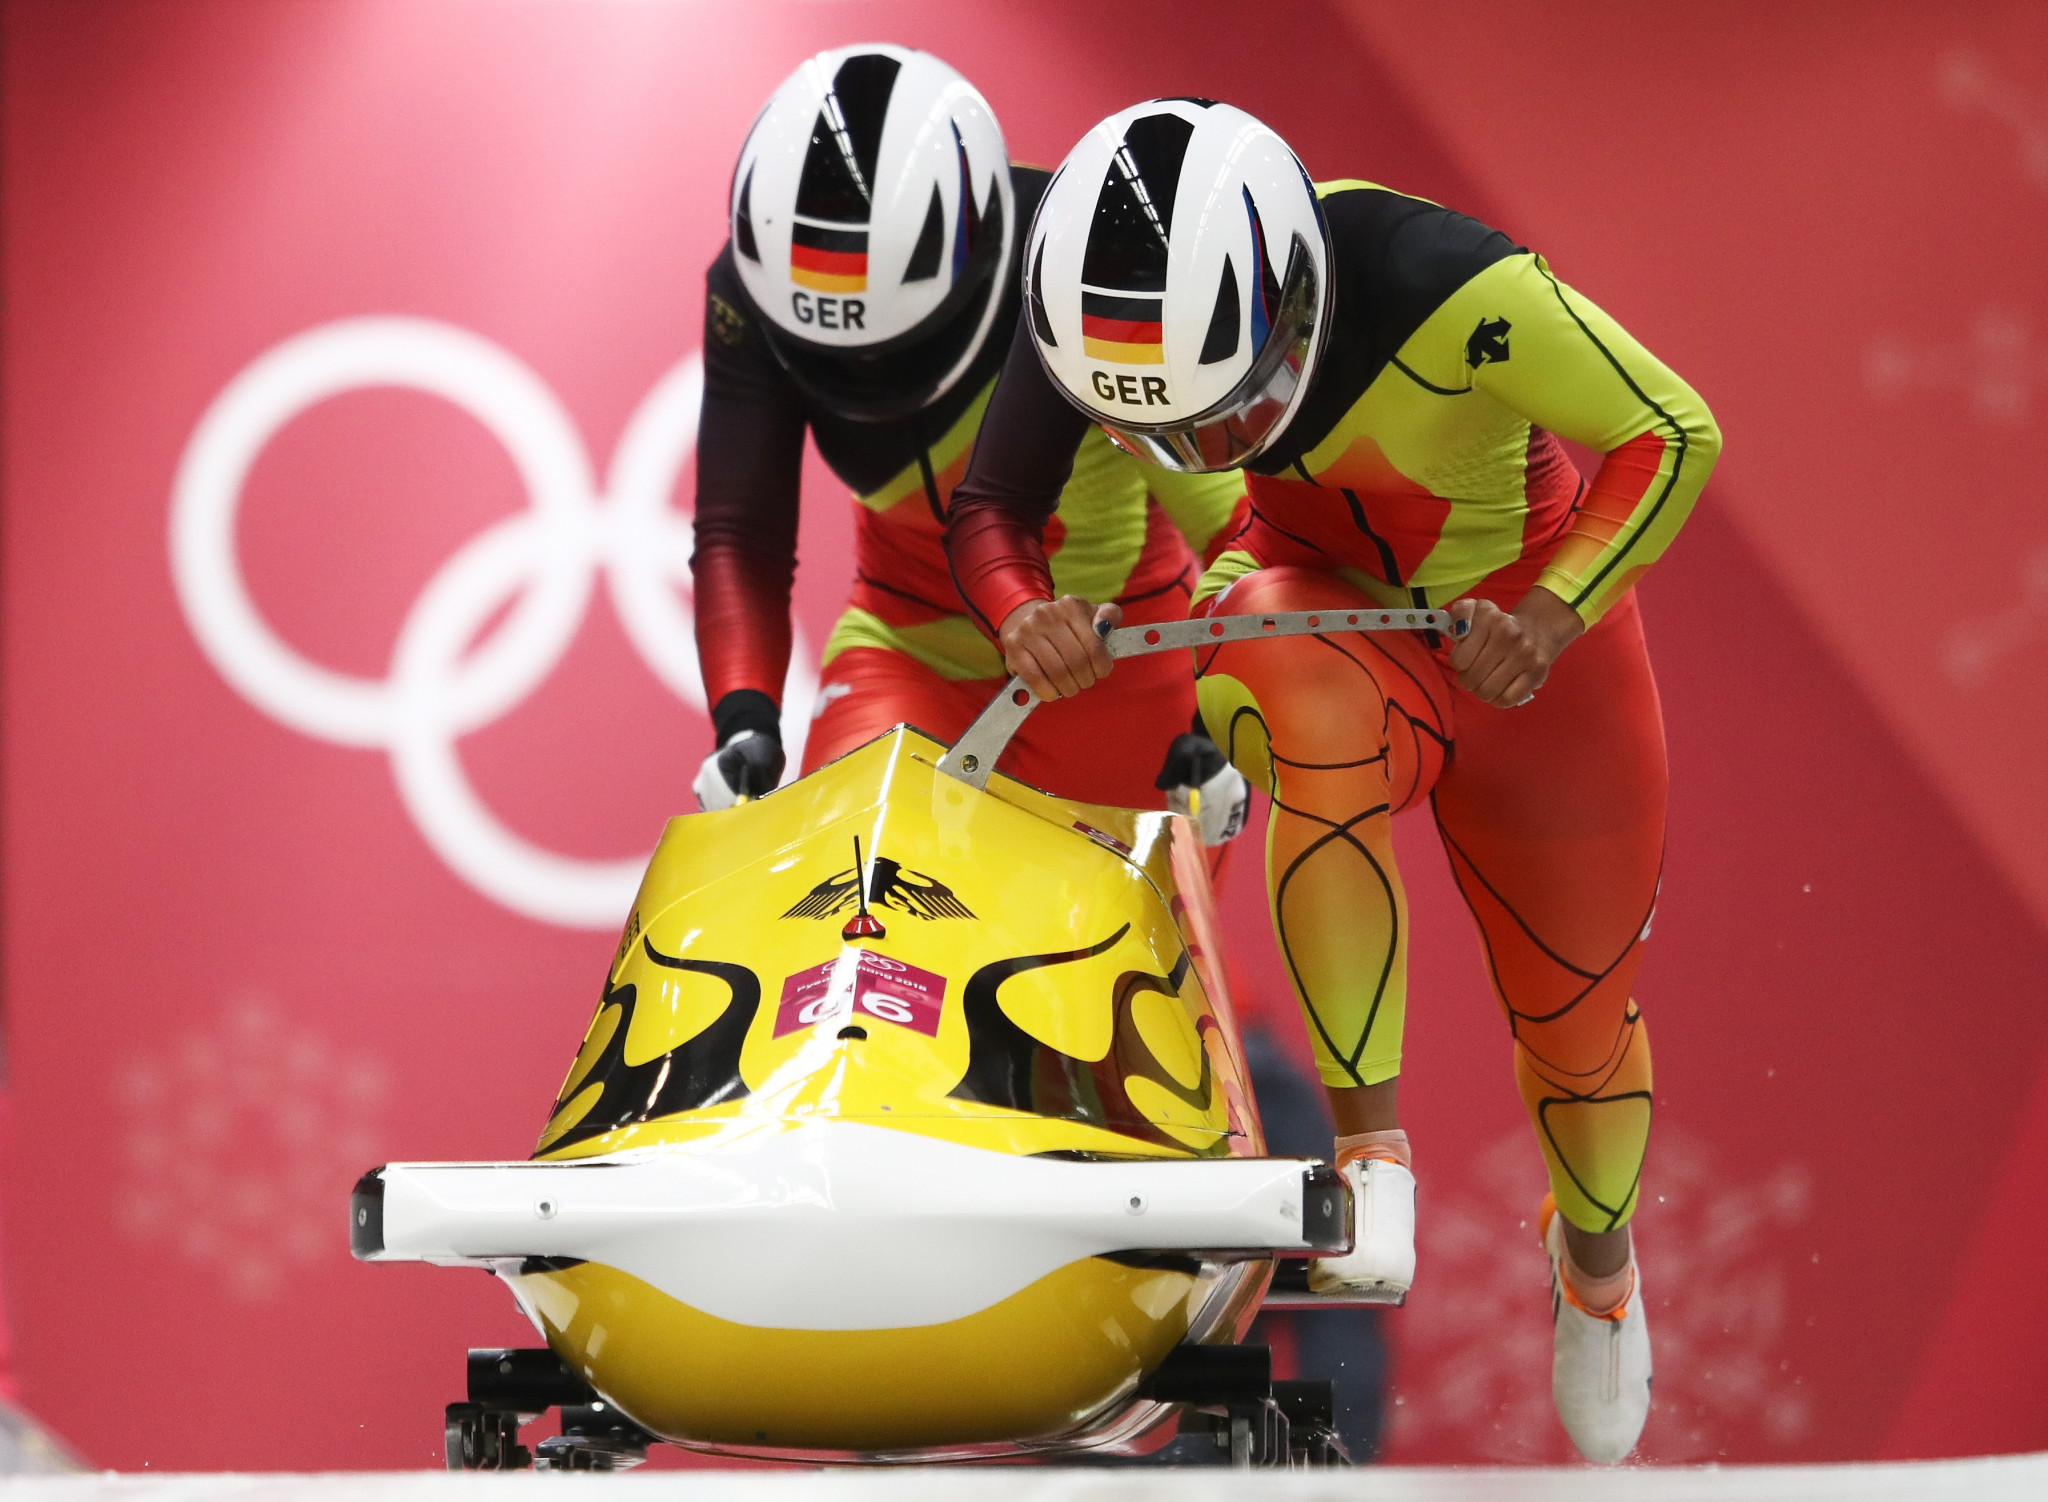 Lisa Buckwitz and Mariama Jamanka won the women's bobsleigh event ©Getty Images